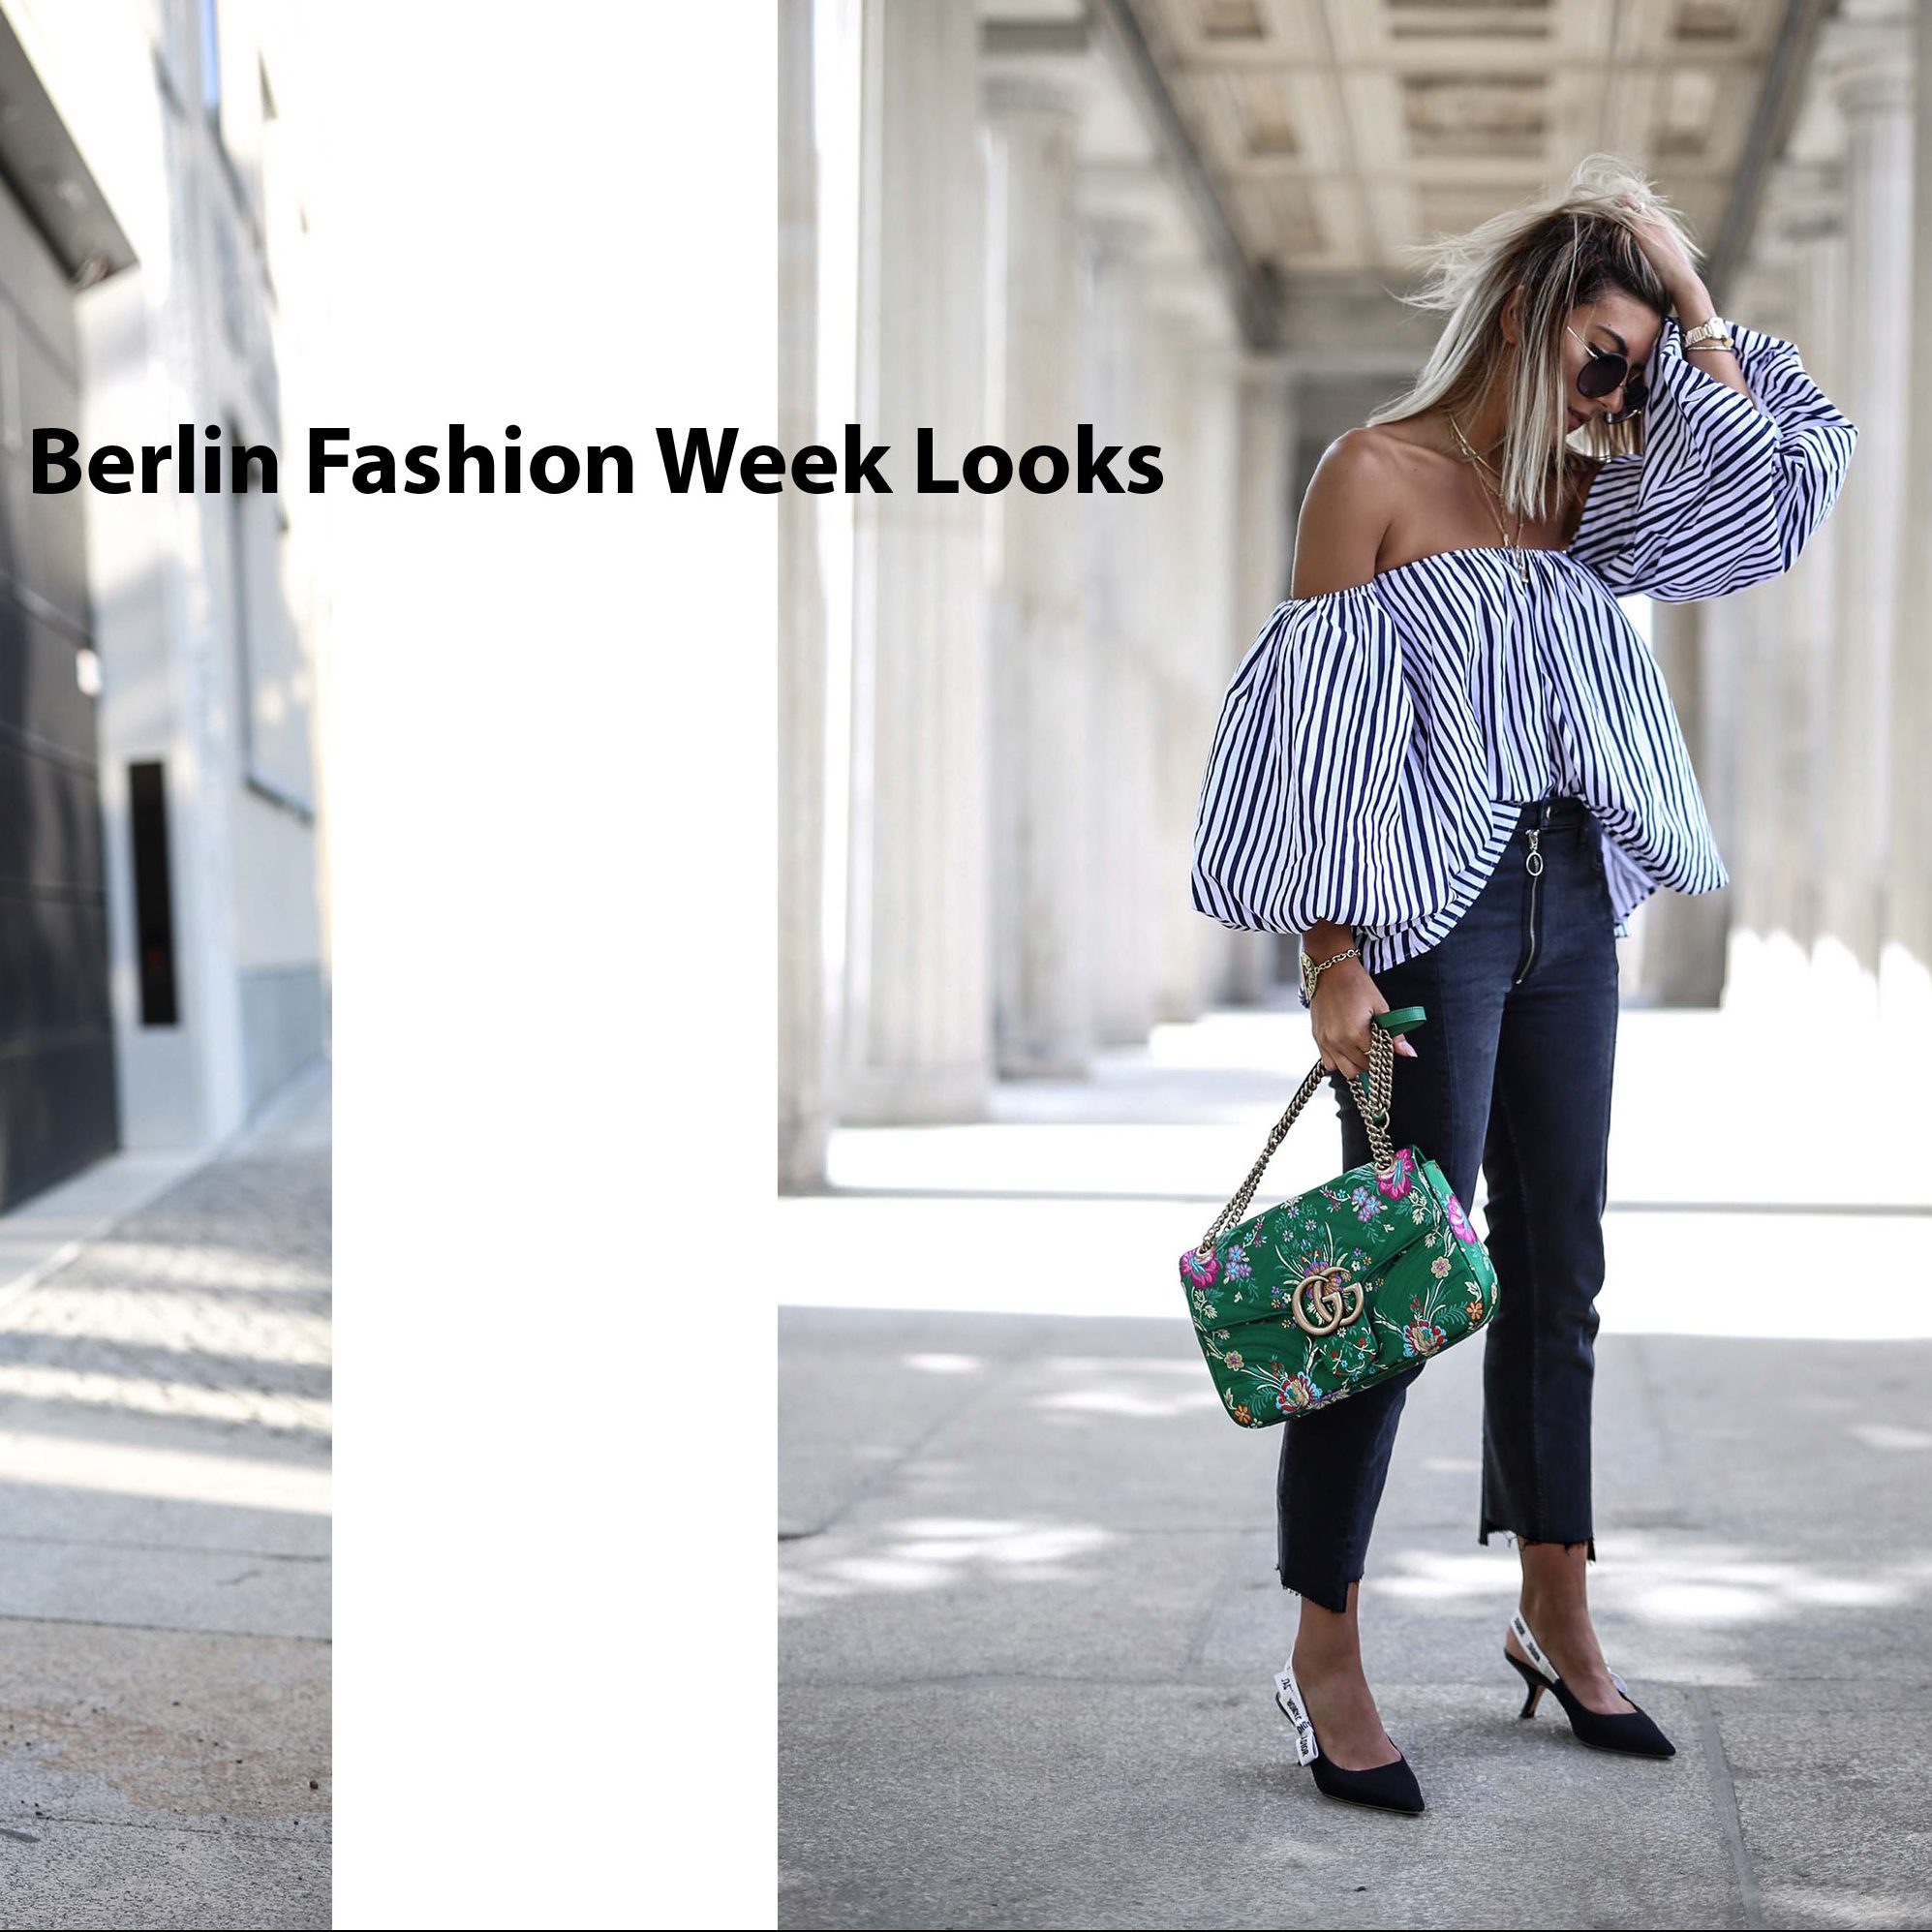 Berlin Fashion Week ´17 Looks